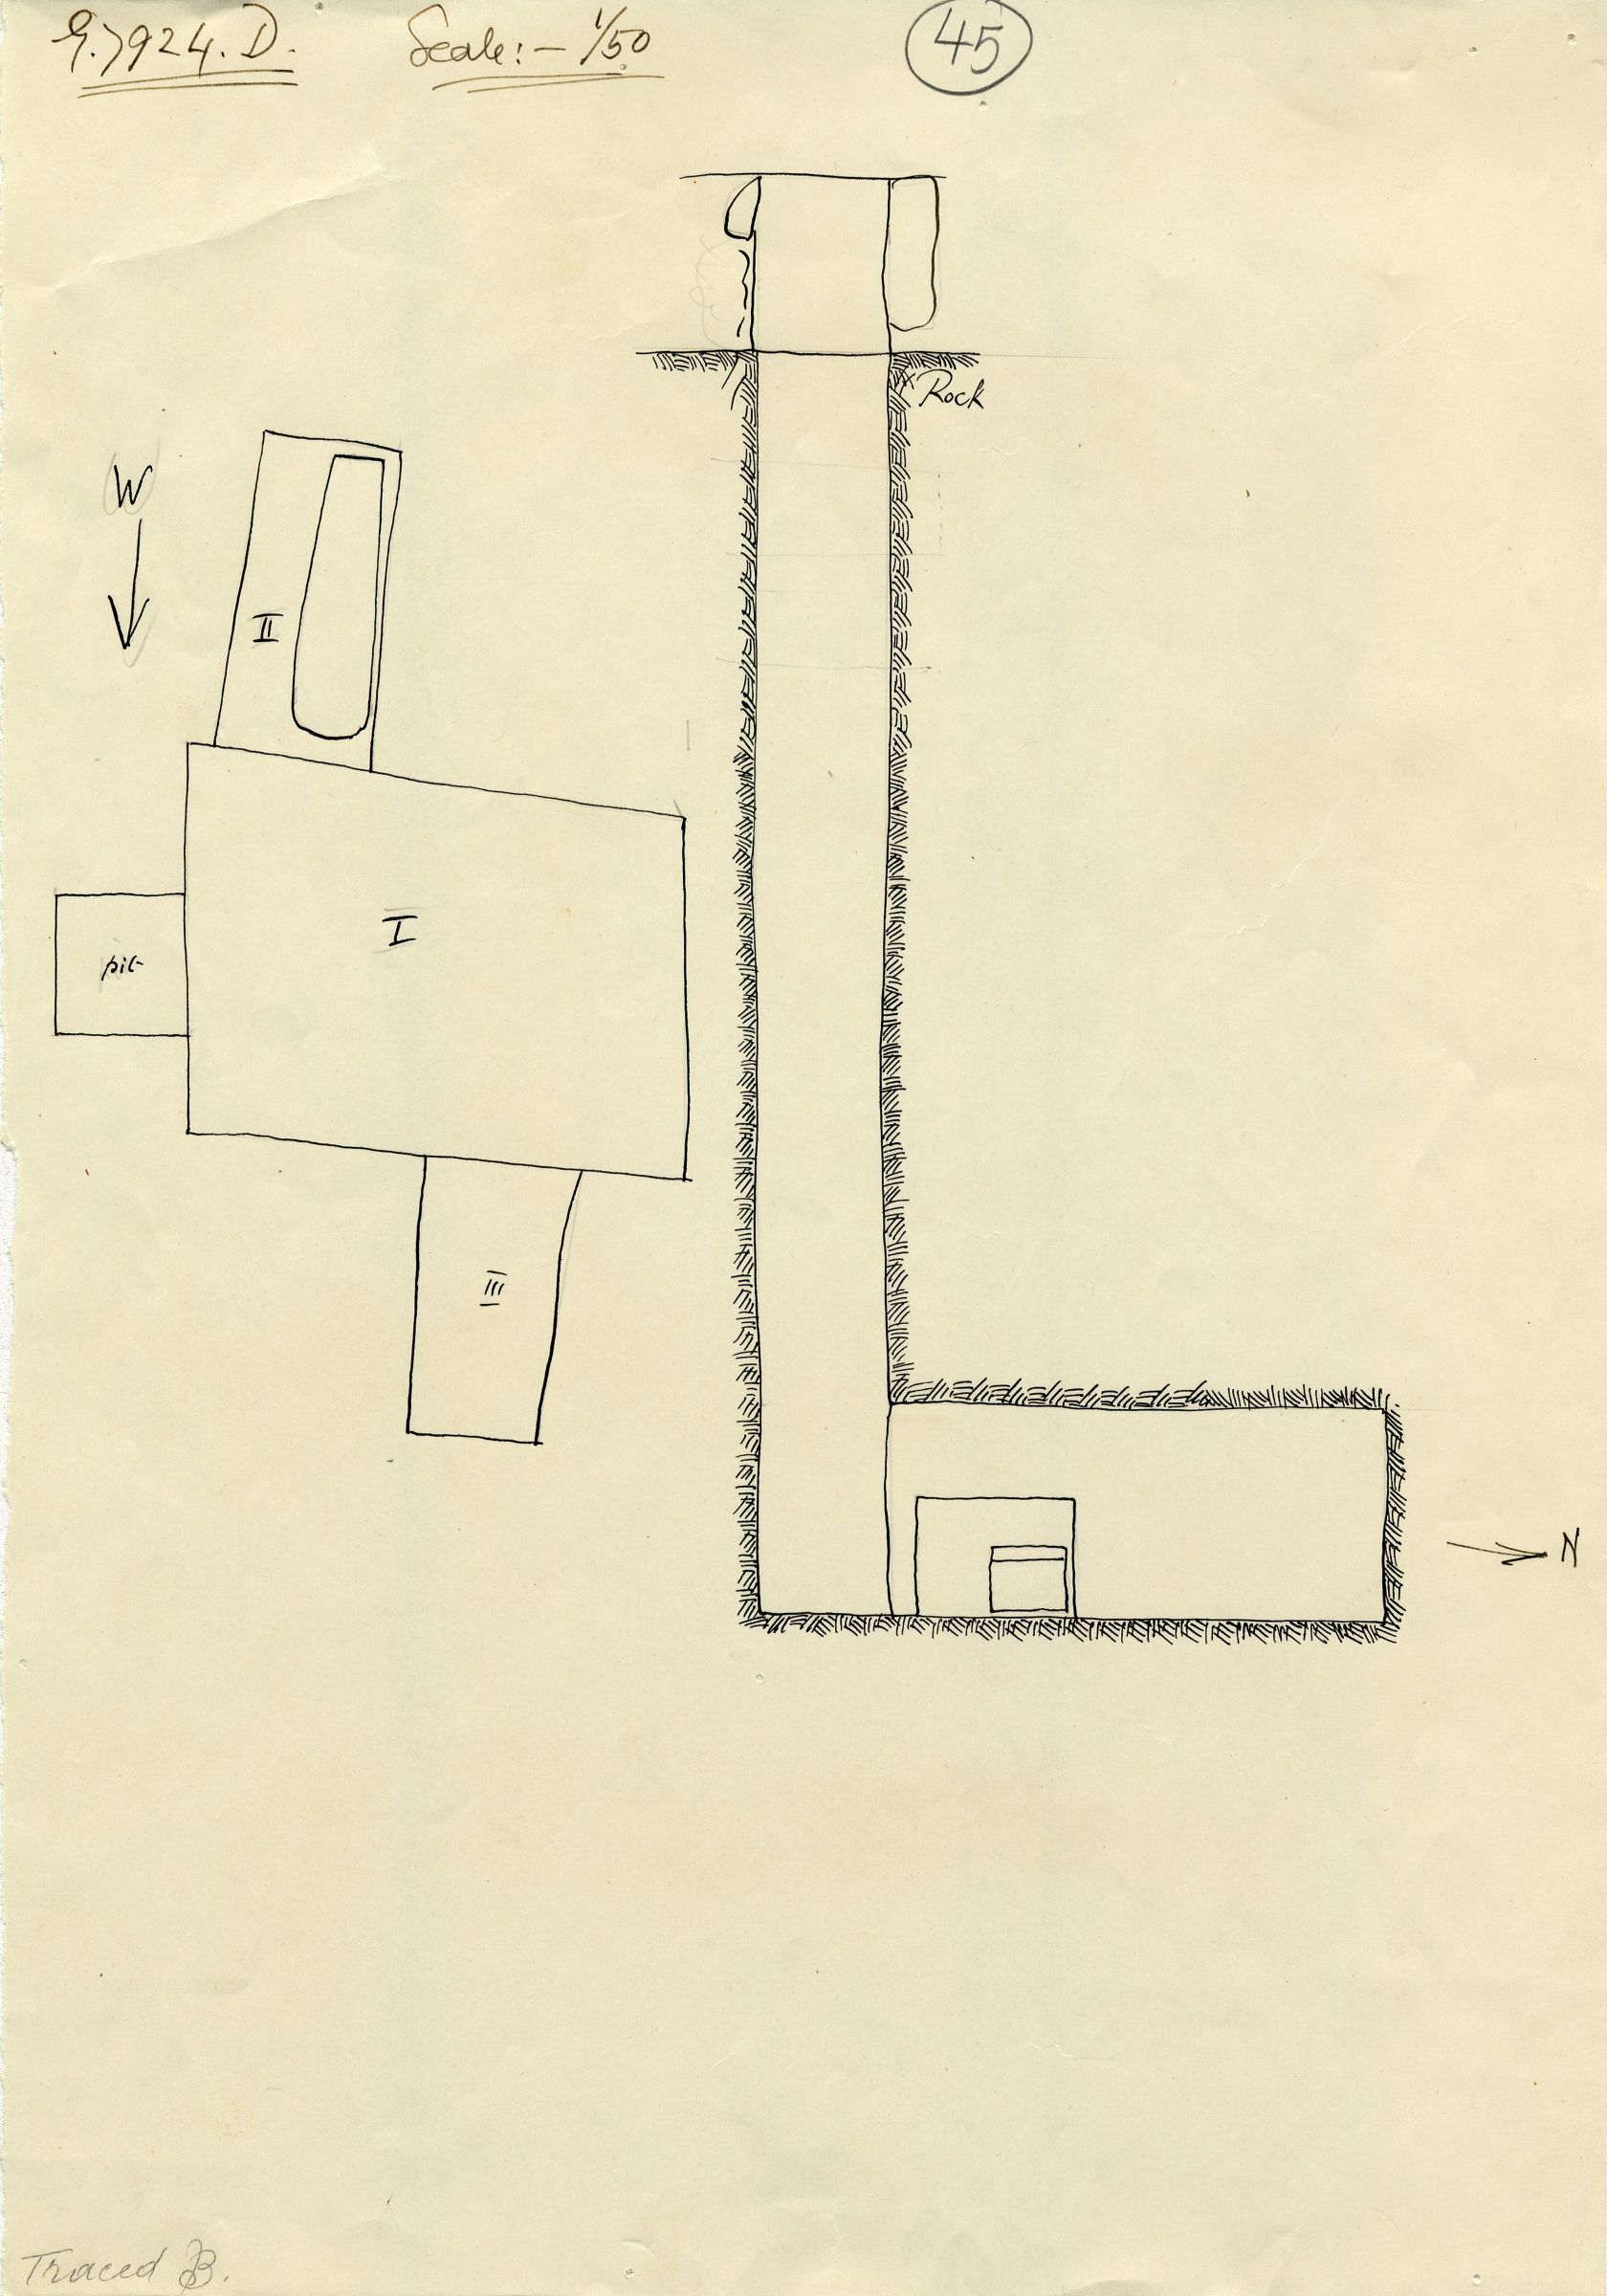 Maps and plans: G 7924b, Shaft D